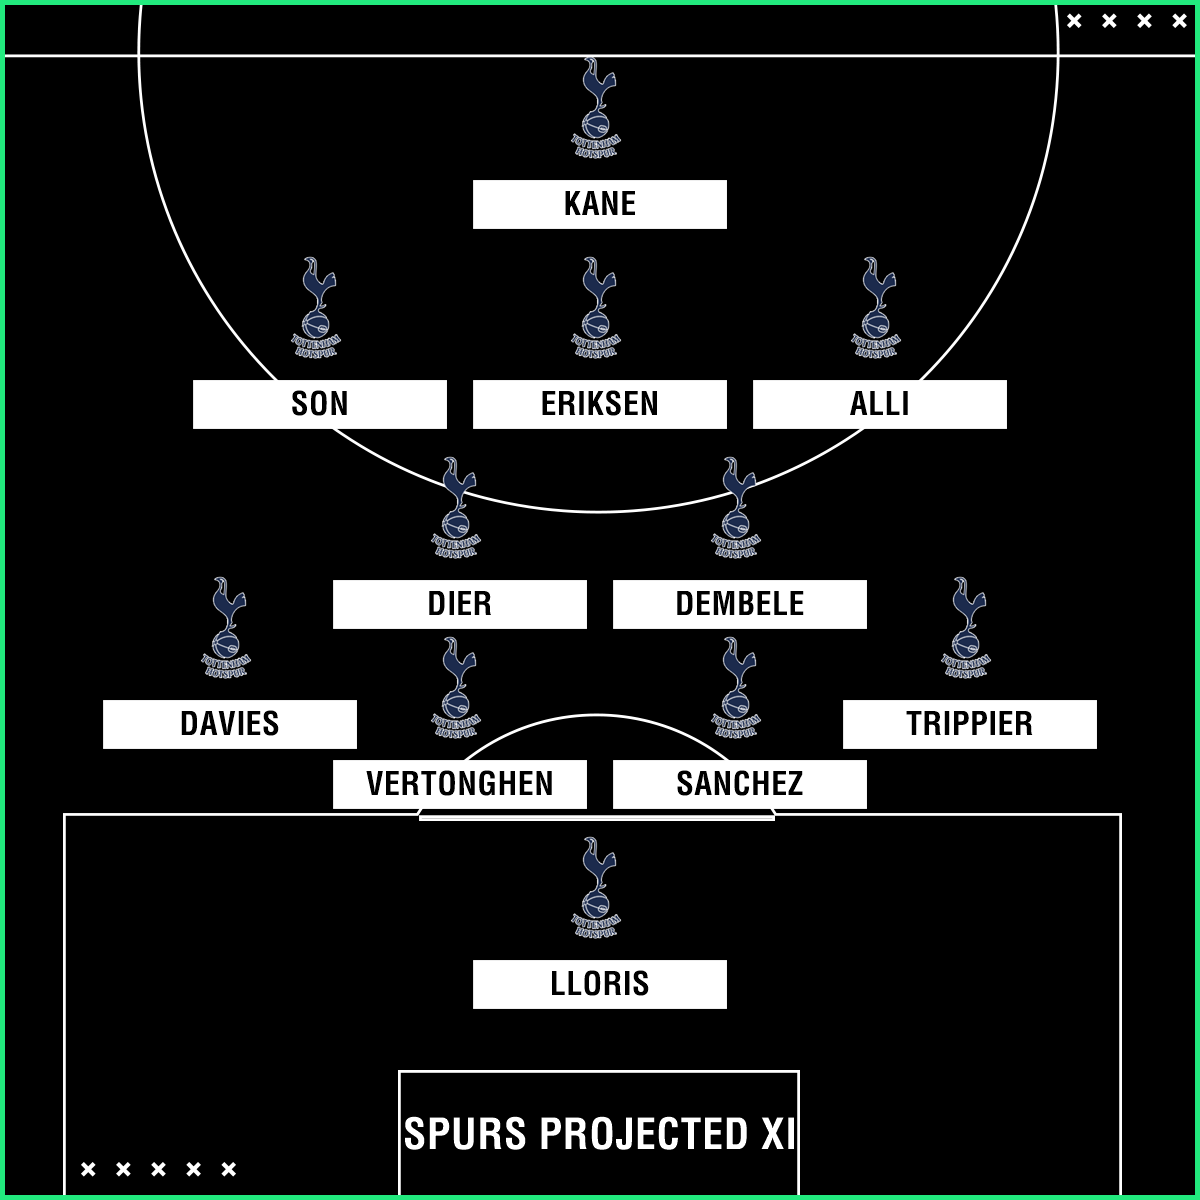 Tottenham Team News: Injuries, Suspensions And Line-up Vs